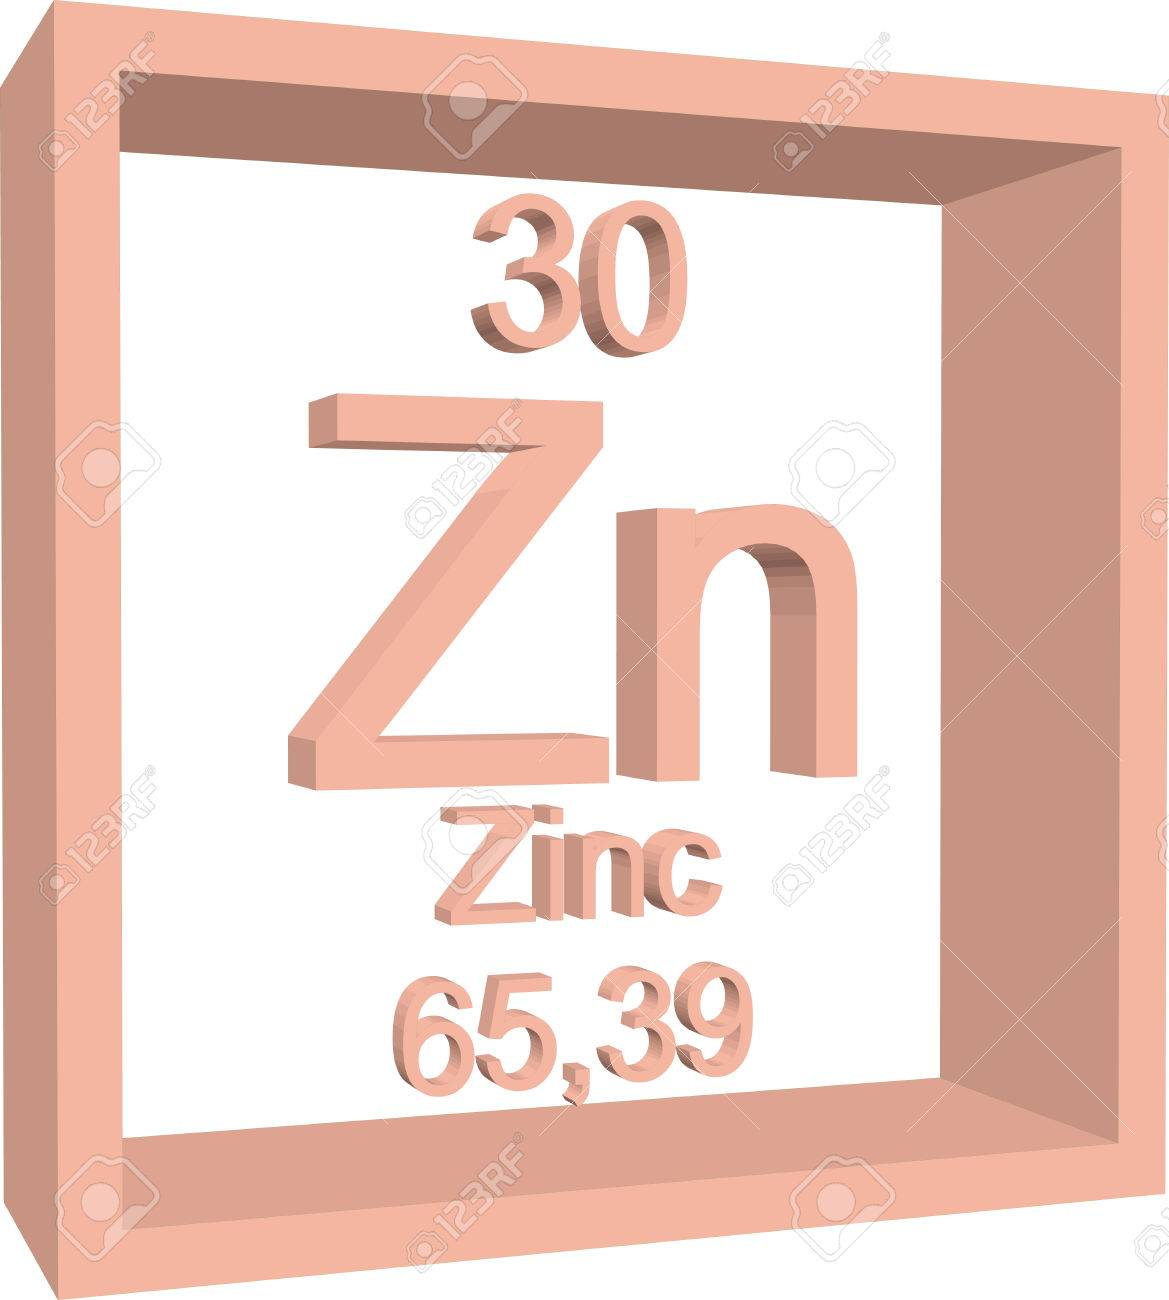 14th element periodic table image collections periodic table images 14th element periodic table image collections periodic table images zinc in periodic table images periodic table gamestrikefo Gallery